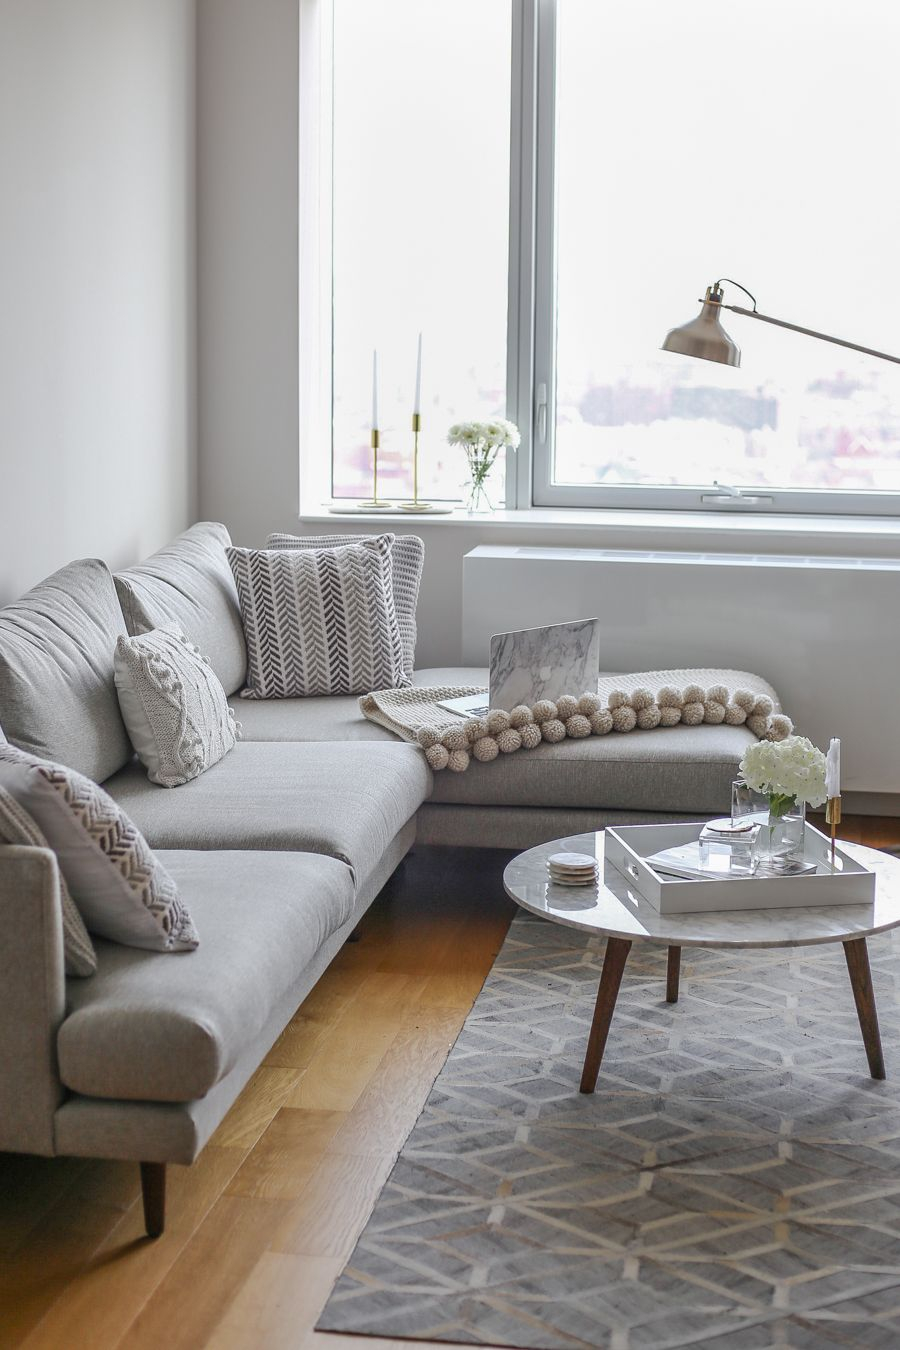 Nyc Living Room Apartment Grey Sectional Sofa With A Marble Coffee intended for 14 Some of the Coolest Tricks of How to Upgrade Living Room Sets Nyc